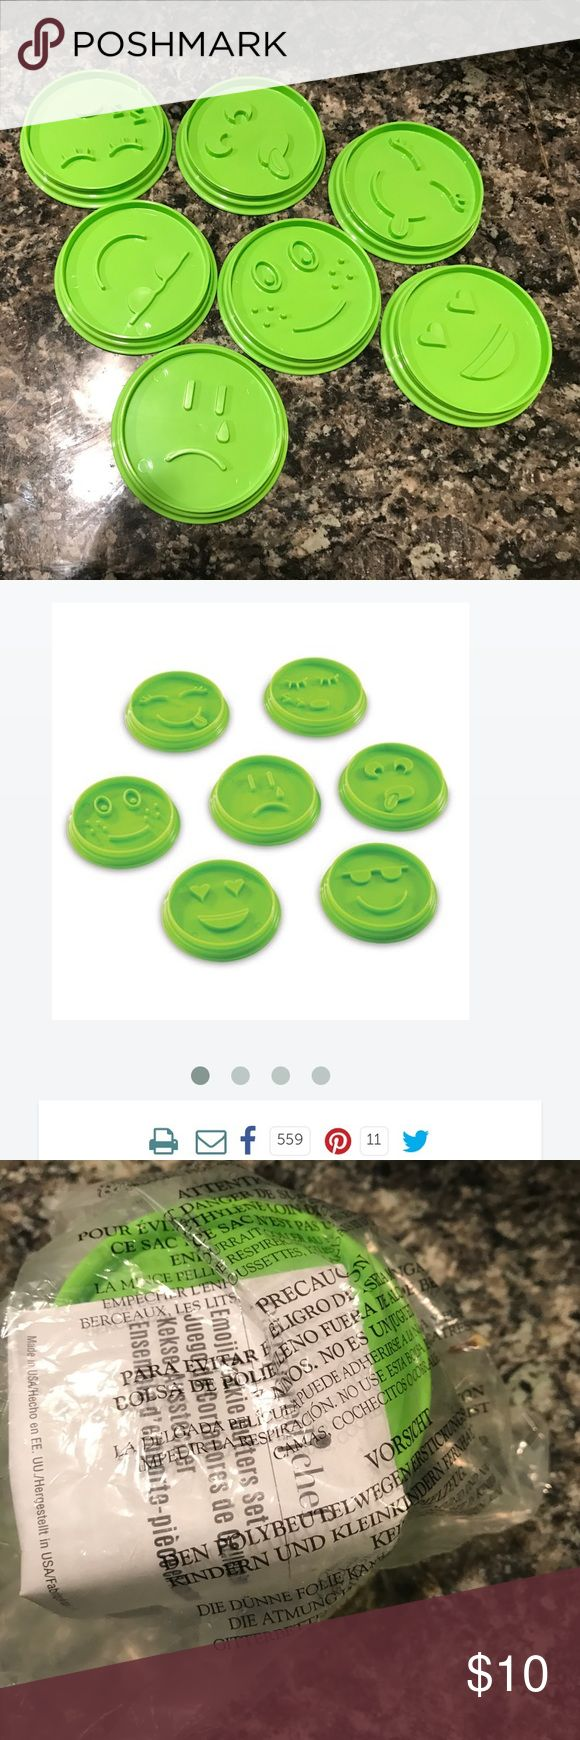 "Pampered Chef Emoji Cookie Cutters Whether you're having a party, making a gift, or just having fun in the kitchen, the Emoji Cookie Cutter Set is the cutest way ever to get kids cooking. Recommended for ages 6 and up. Details Includes seven cookie cutters that were designed by kids, for kids.™ Smiley sunglasses, sad face, silly face, lovey face, sleepy face, freckle face, and smiley lashes. 3½"" diameter; makes 3"" cookies. Cutters snap together for easy storage. Dishwasher-safe. pampered…"